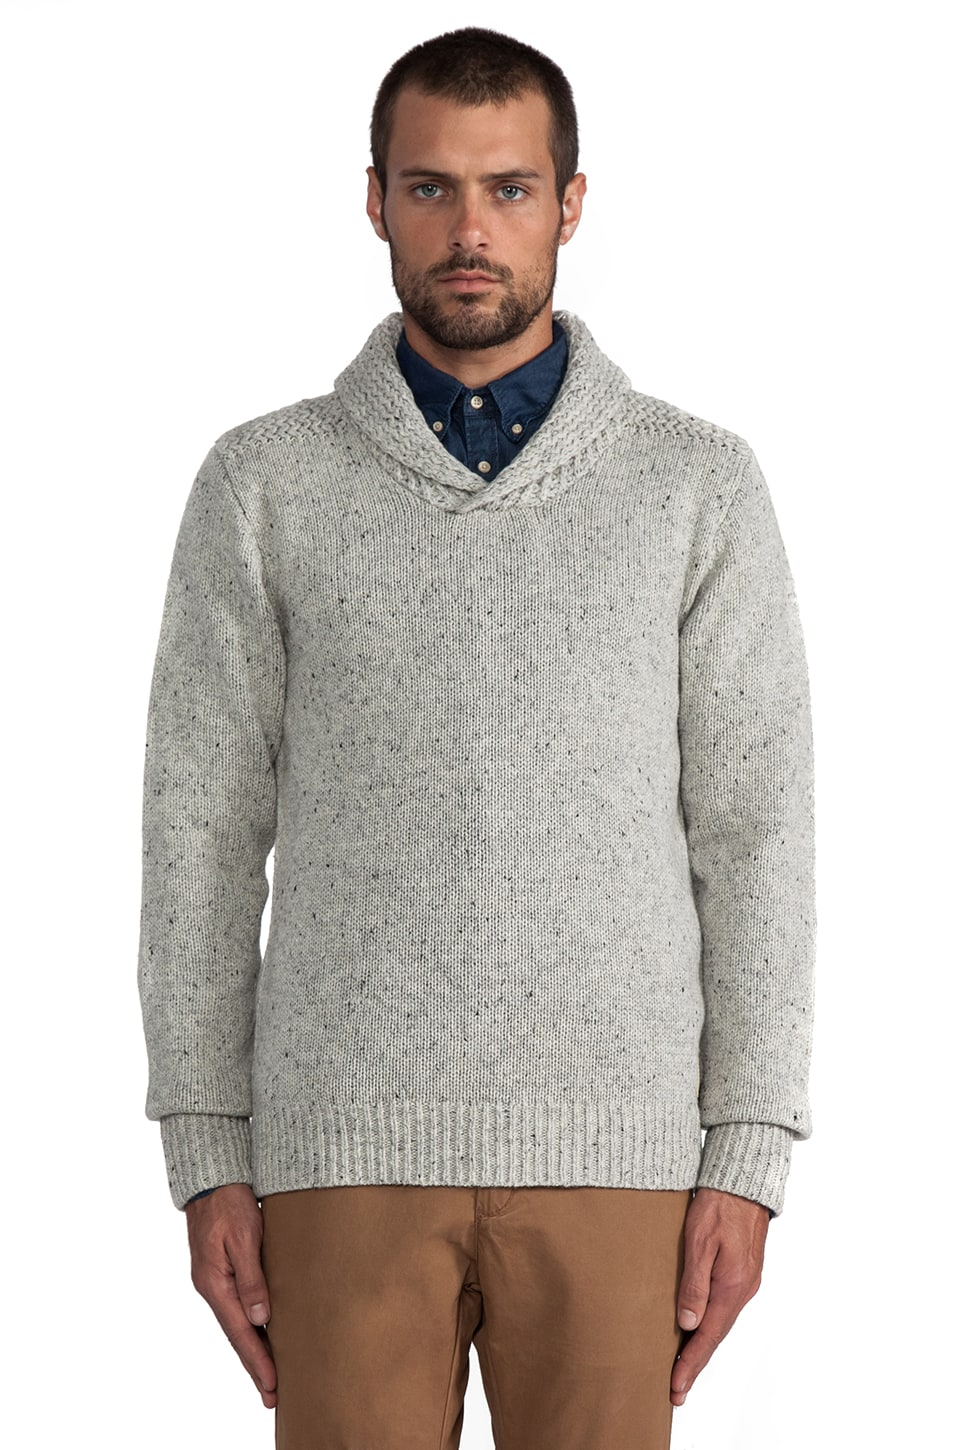 Scotch & Soda Intarsia Pullover w/ Shawl Collar in Grey Melange